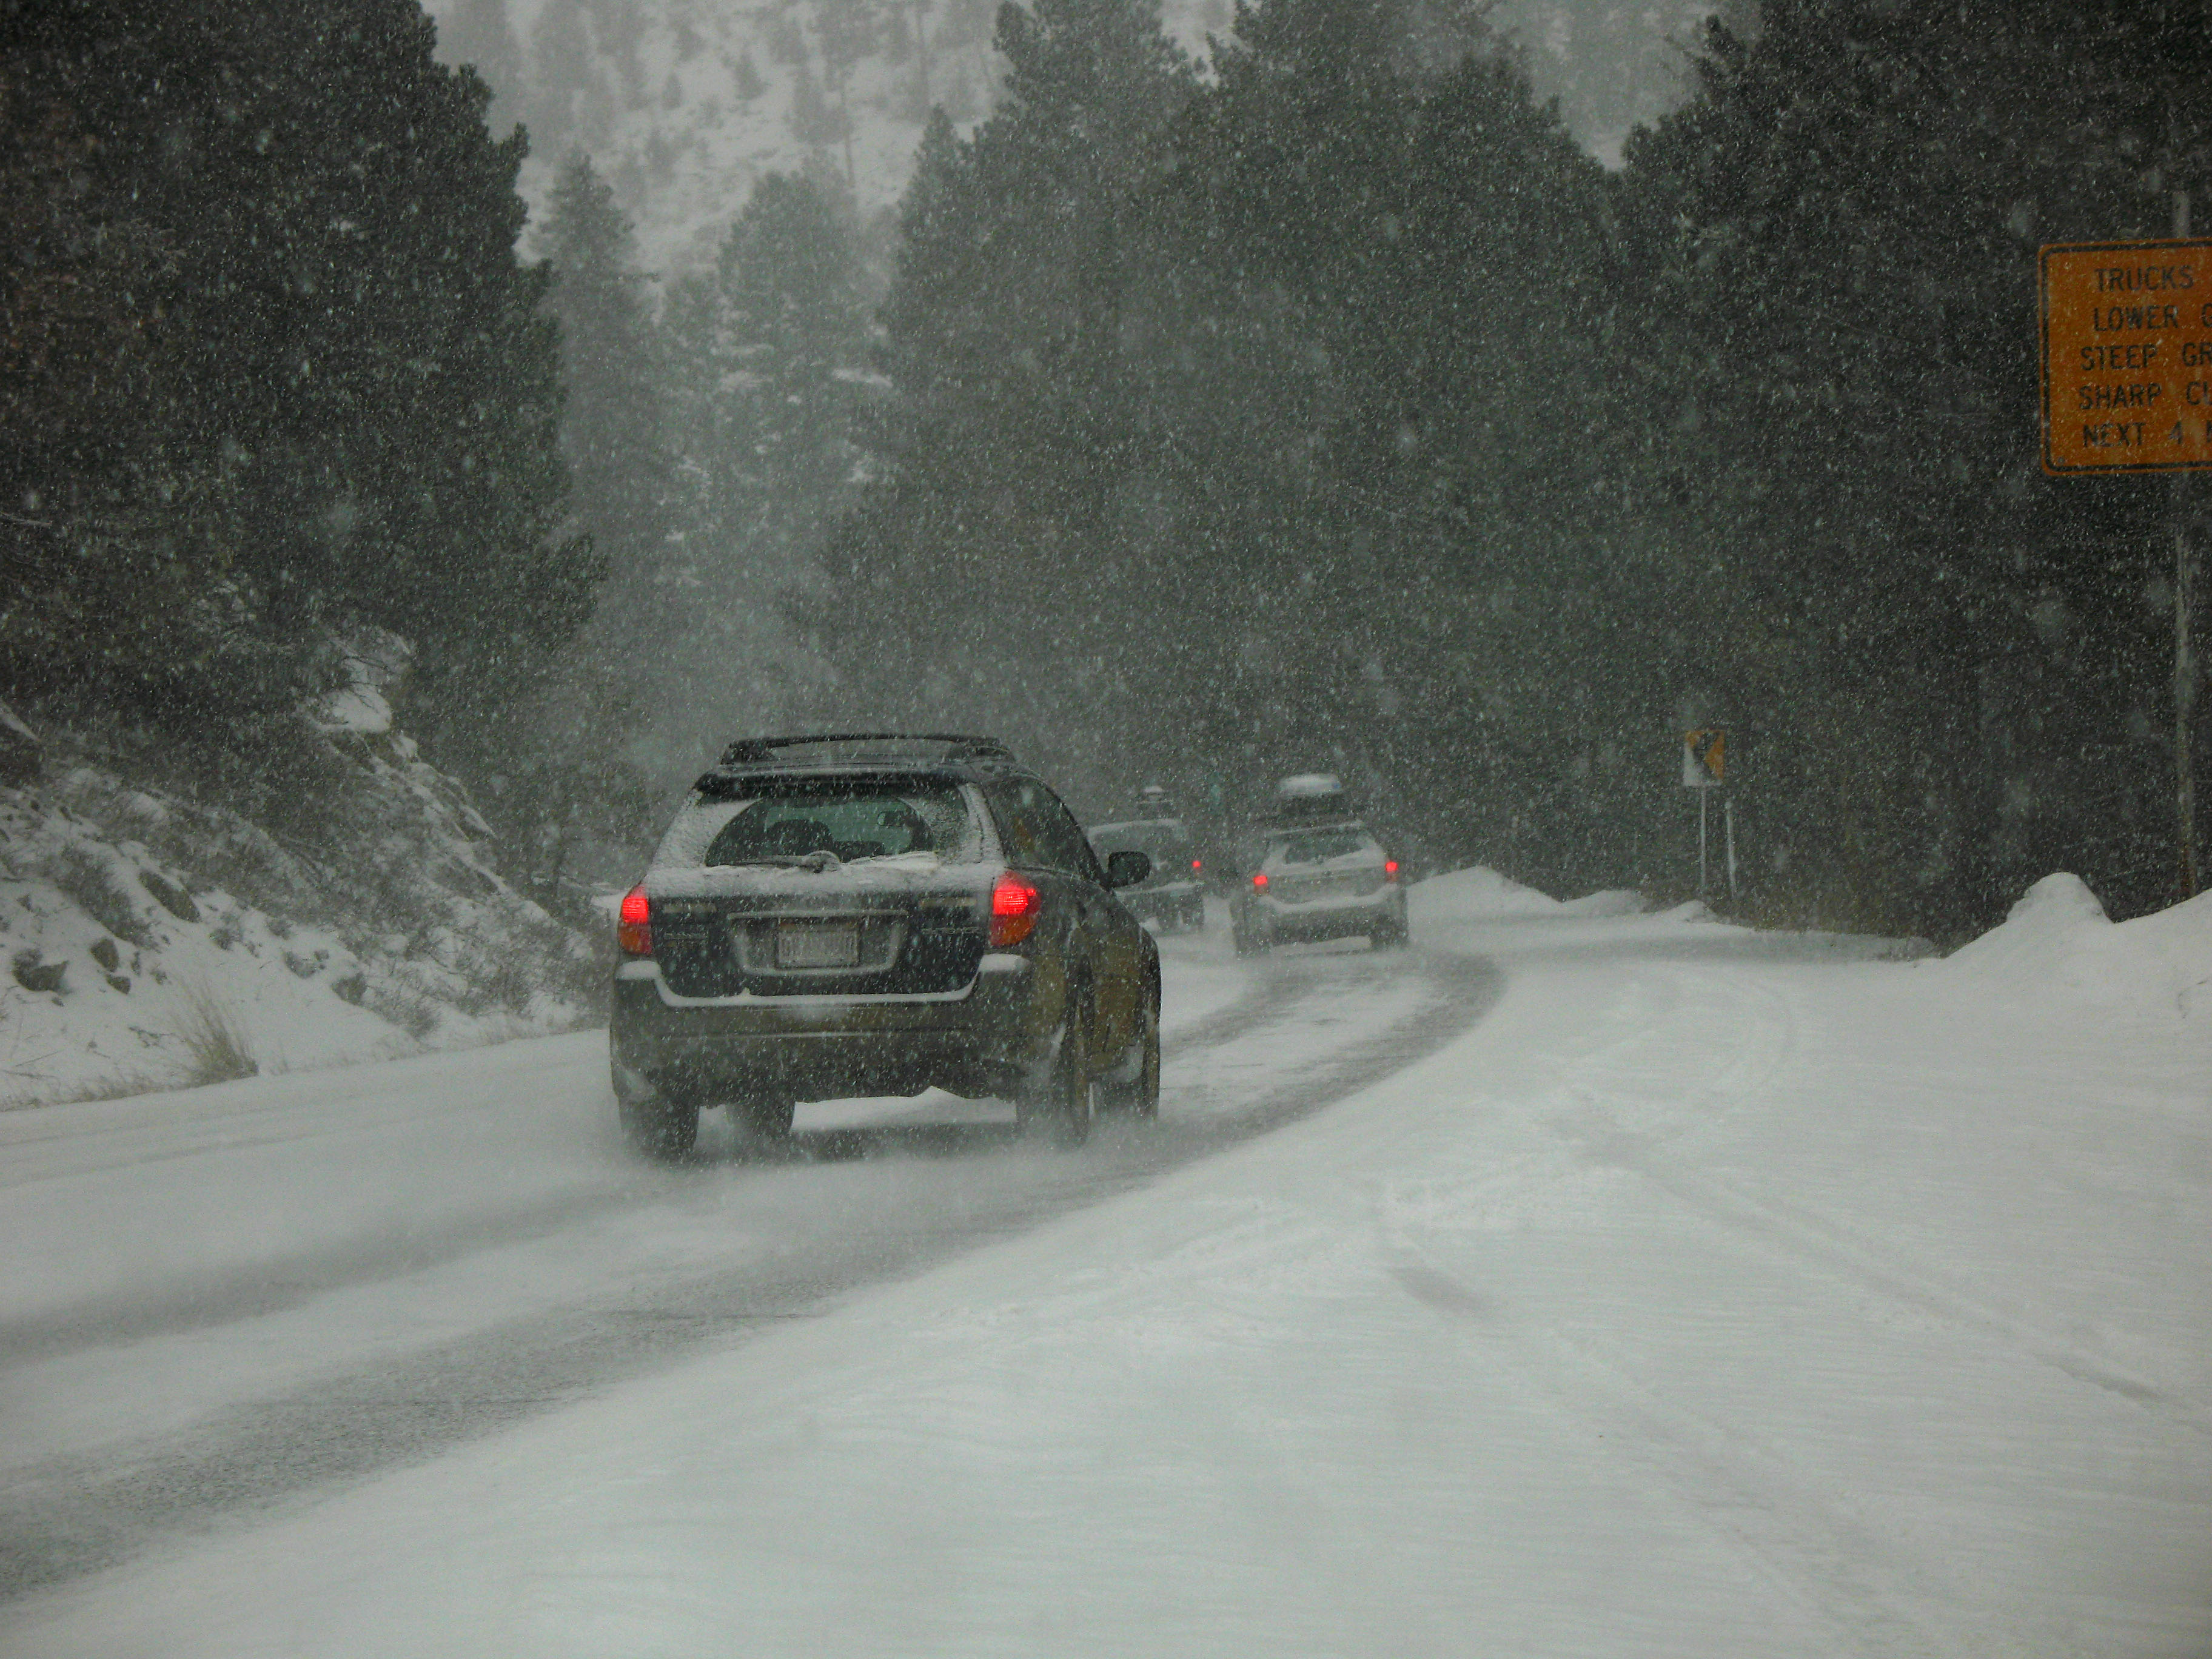 Cars driving in snowy conditions